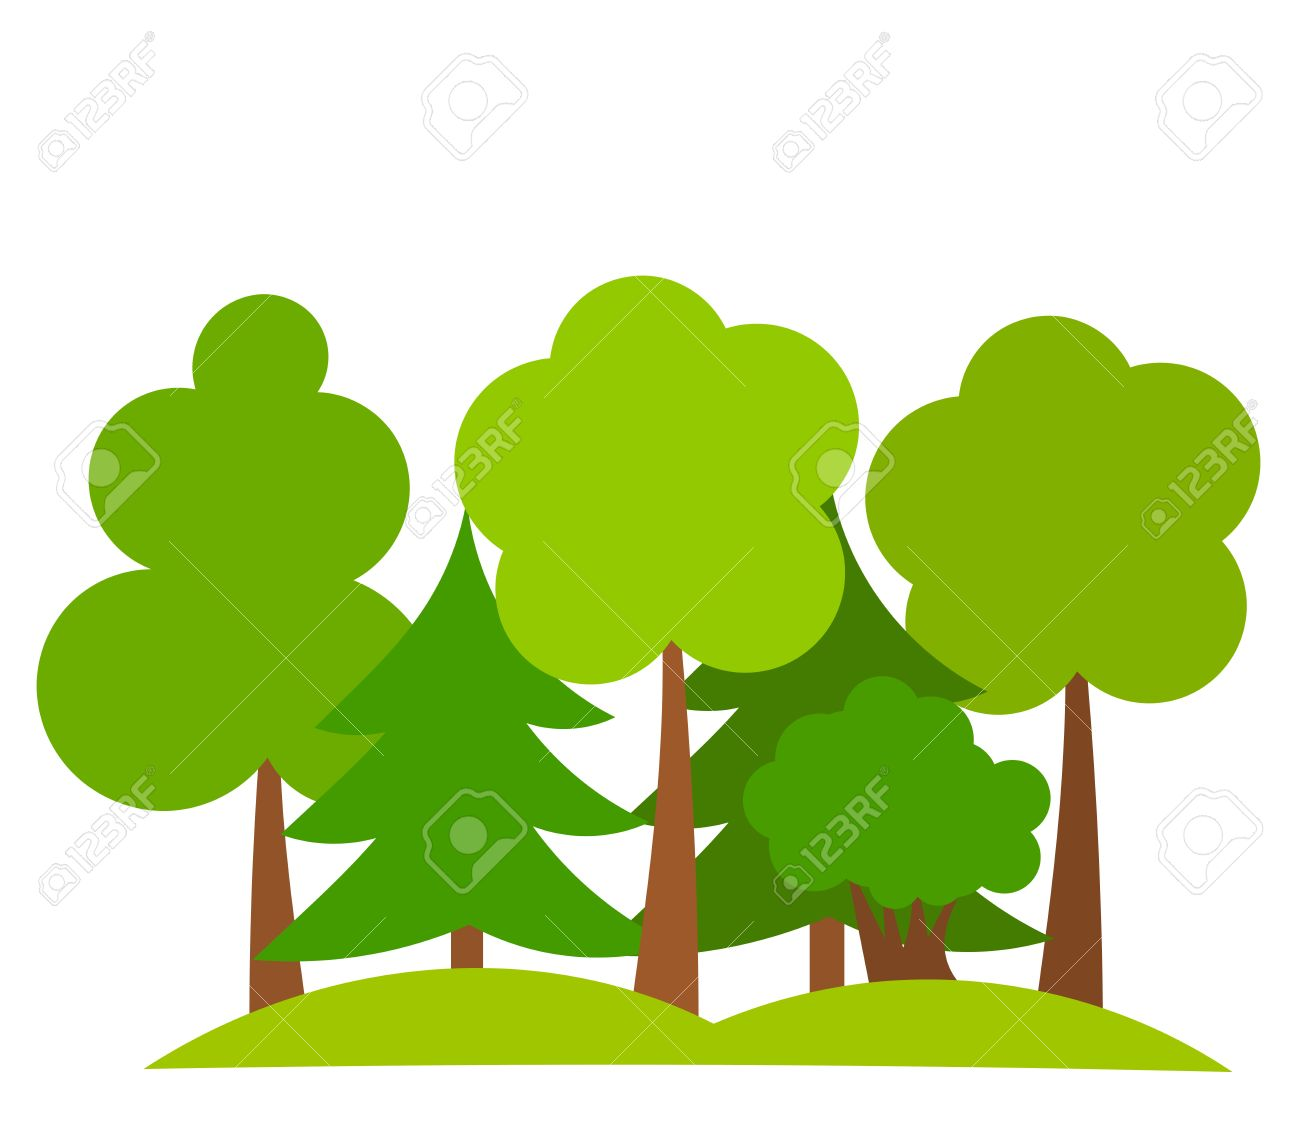 various trees in forest vector illustration royalty free cliparts rh 123rf com forest clip art free forest clipart backgrounds